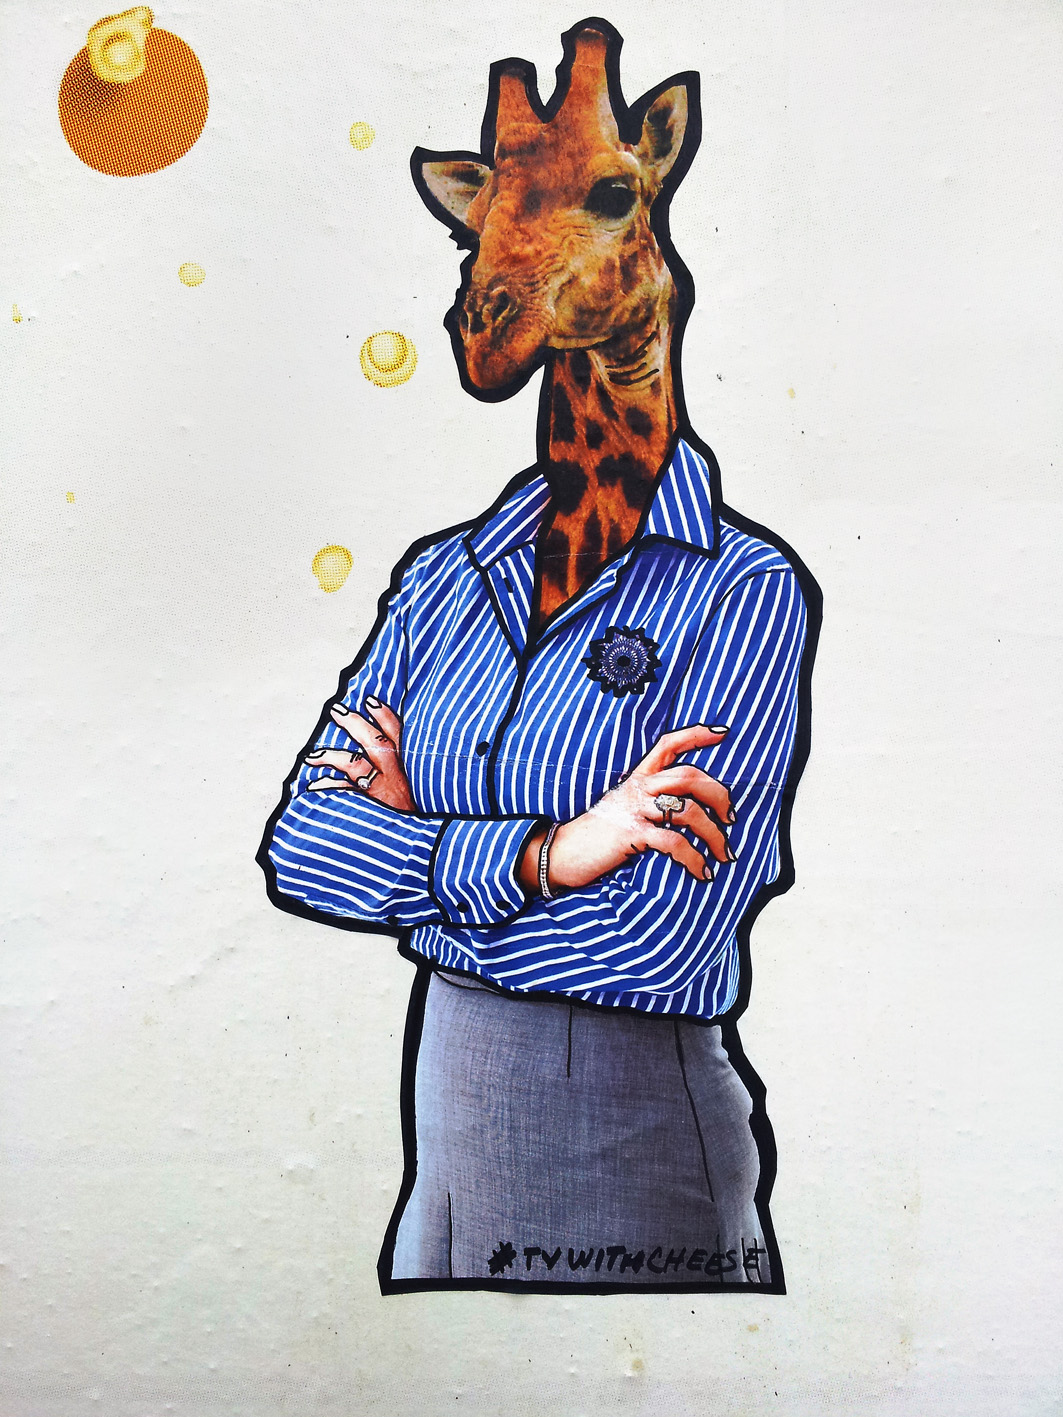 giraffe graffiti by #tvwithcheese#  billboard  xhiller foto for realeyz